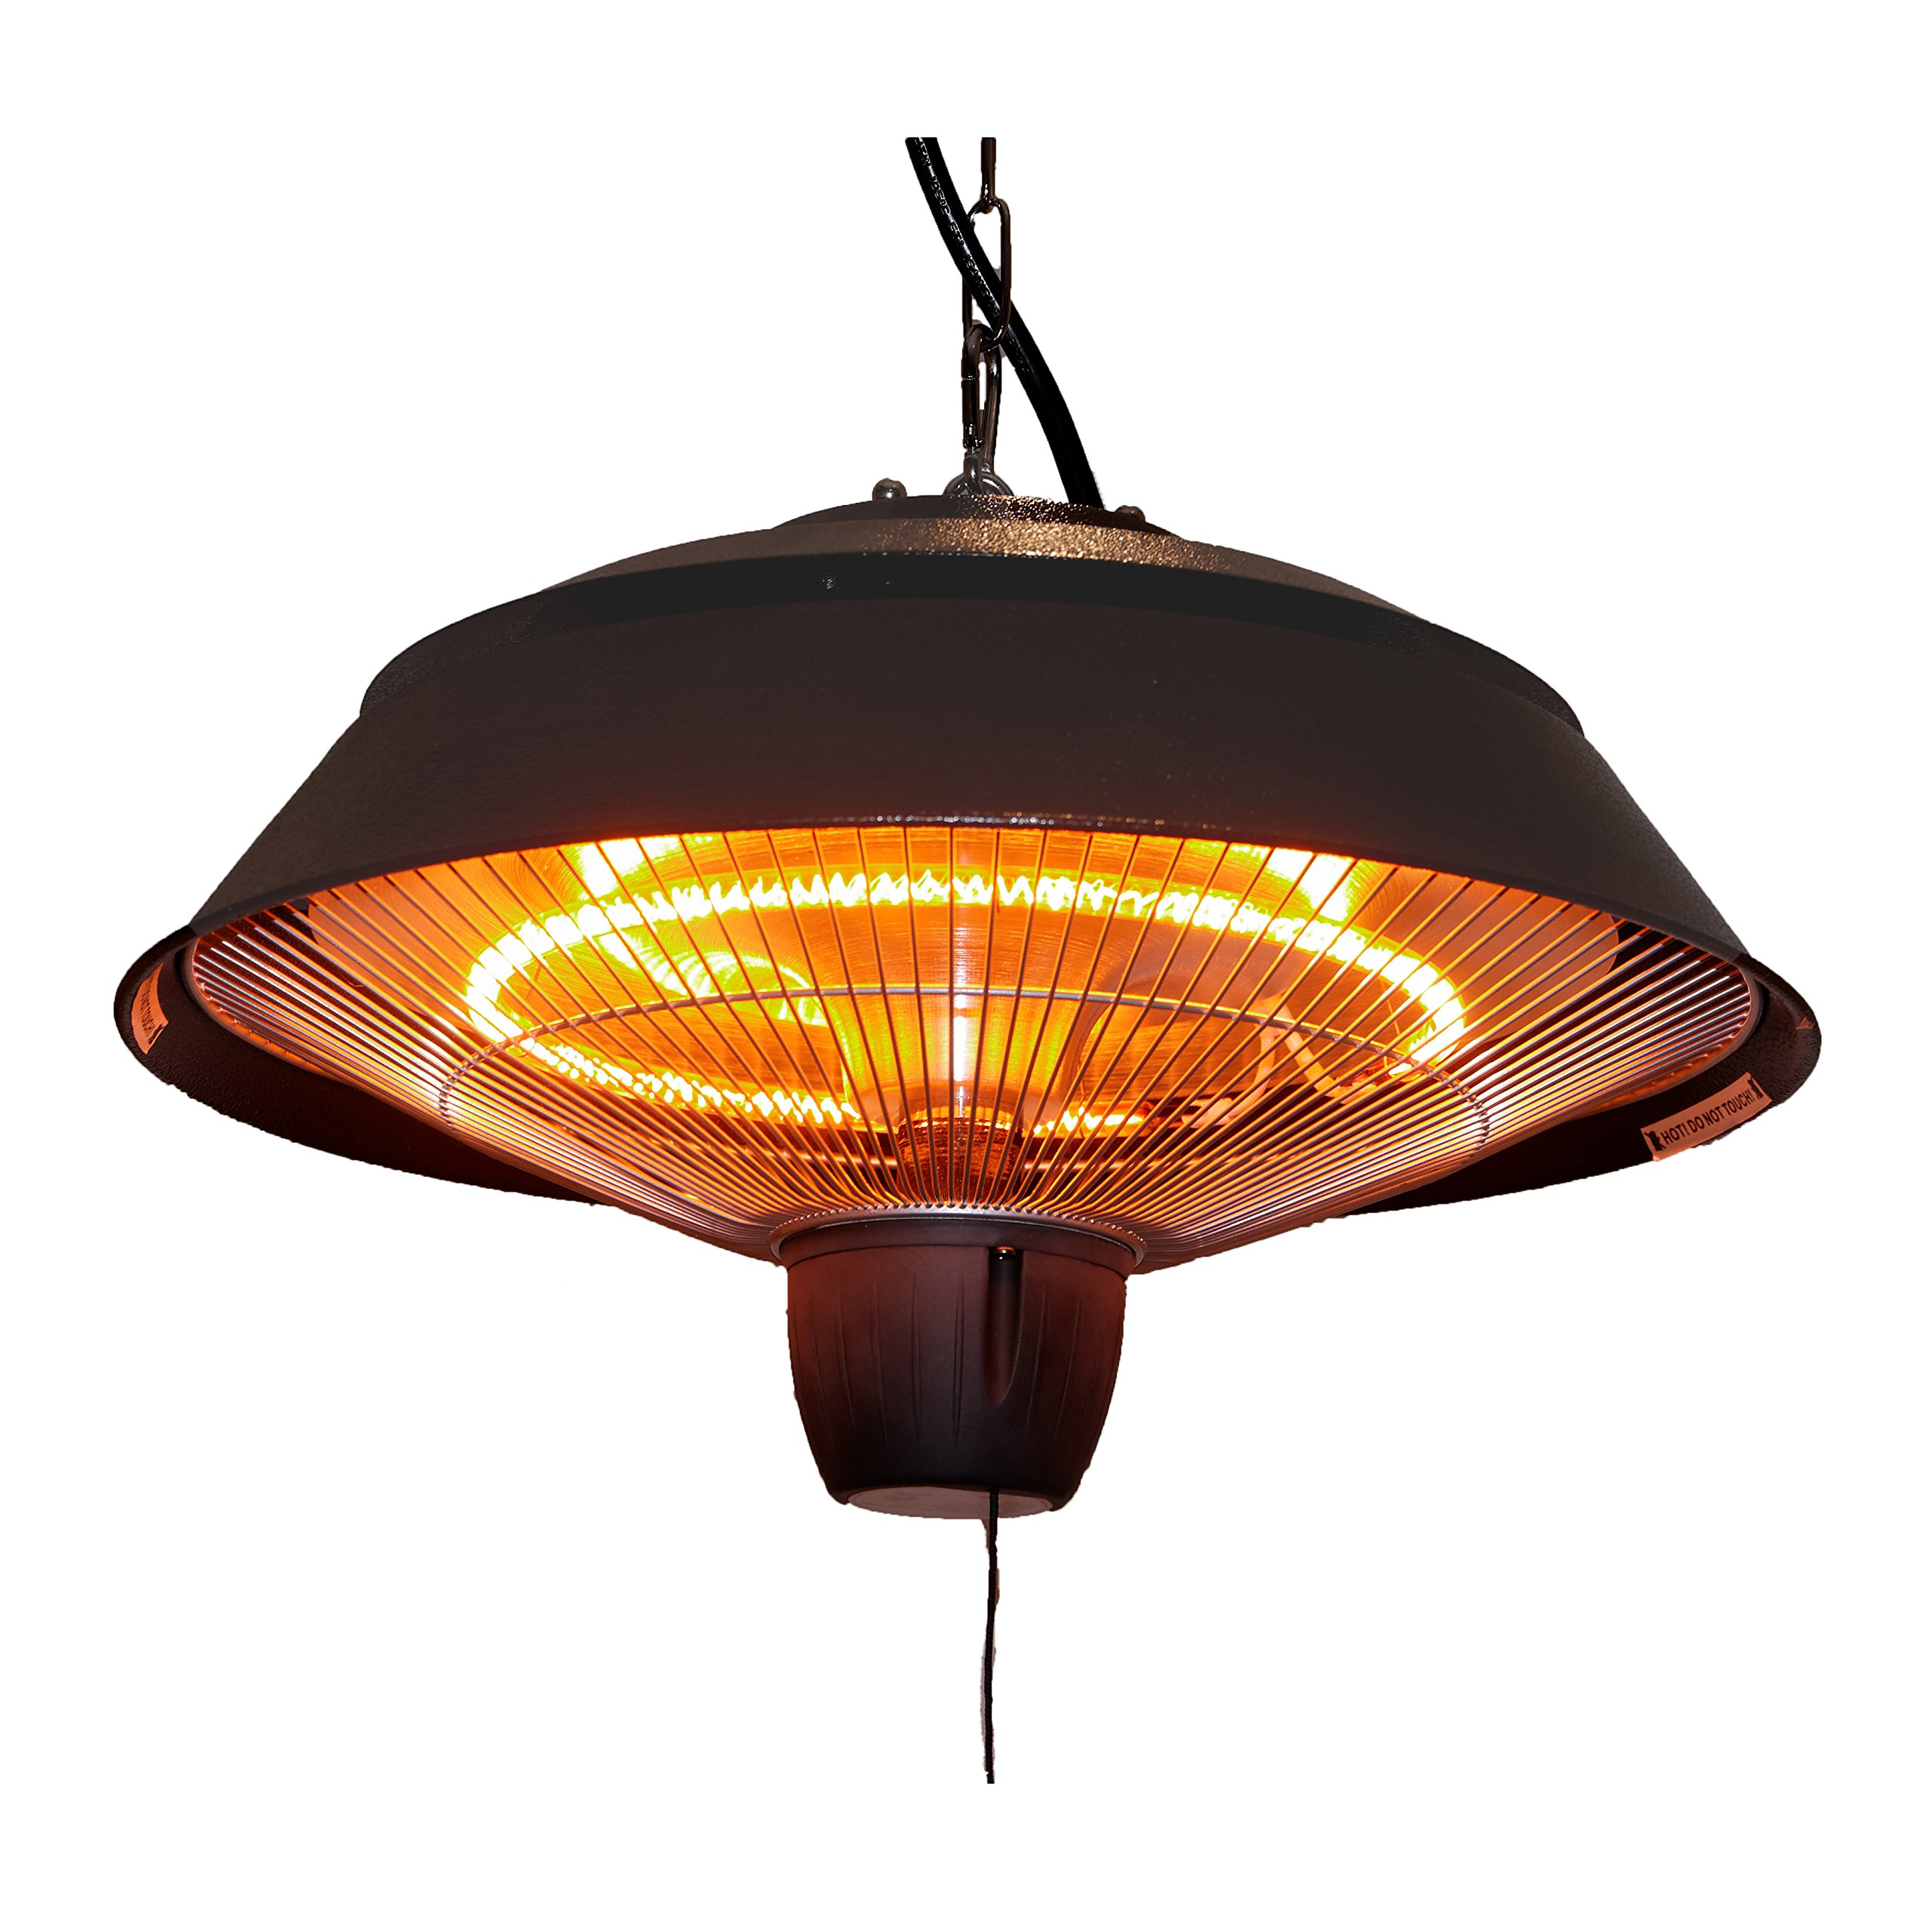 Ener-G+ Infrared Outdoor Ceiling Electric Patio Heater, Hammered Brown